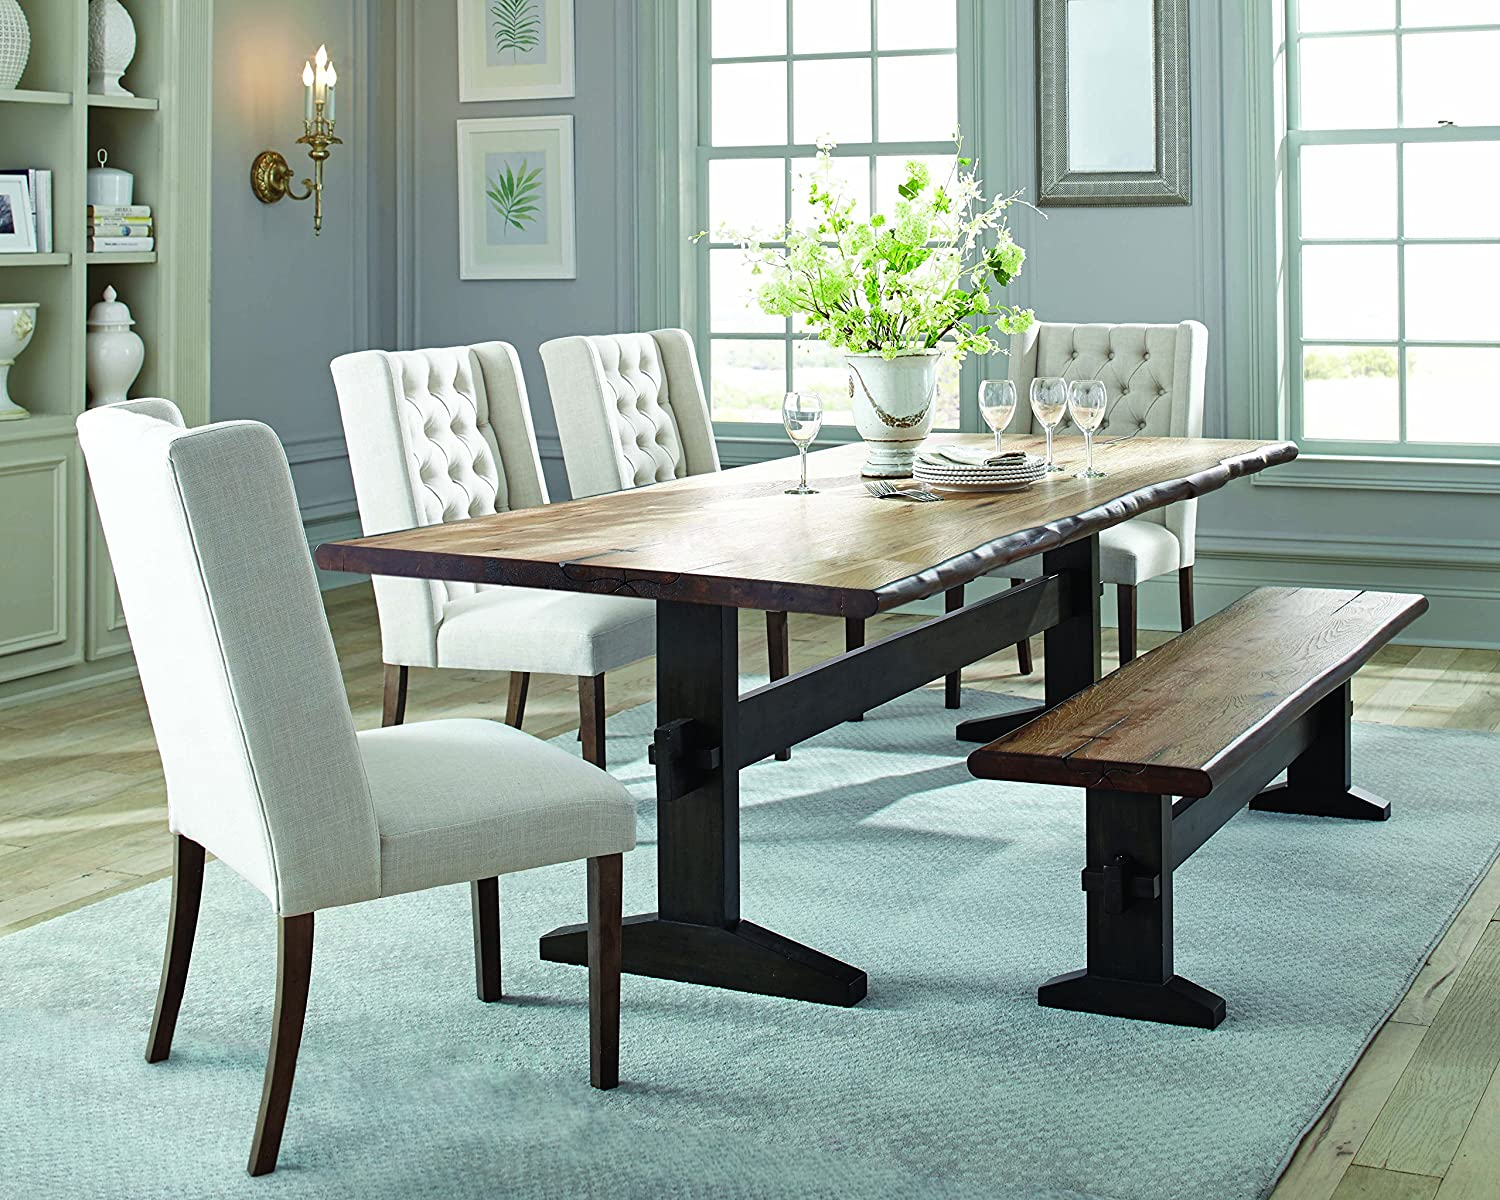 Burnham Two-Tone Live Edge Dining Bench with Trestle Base Natural Honey and Espresso